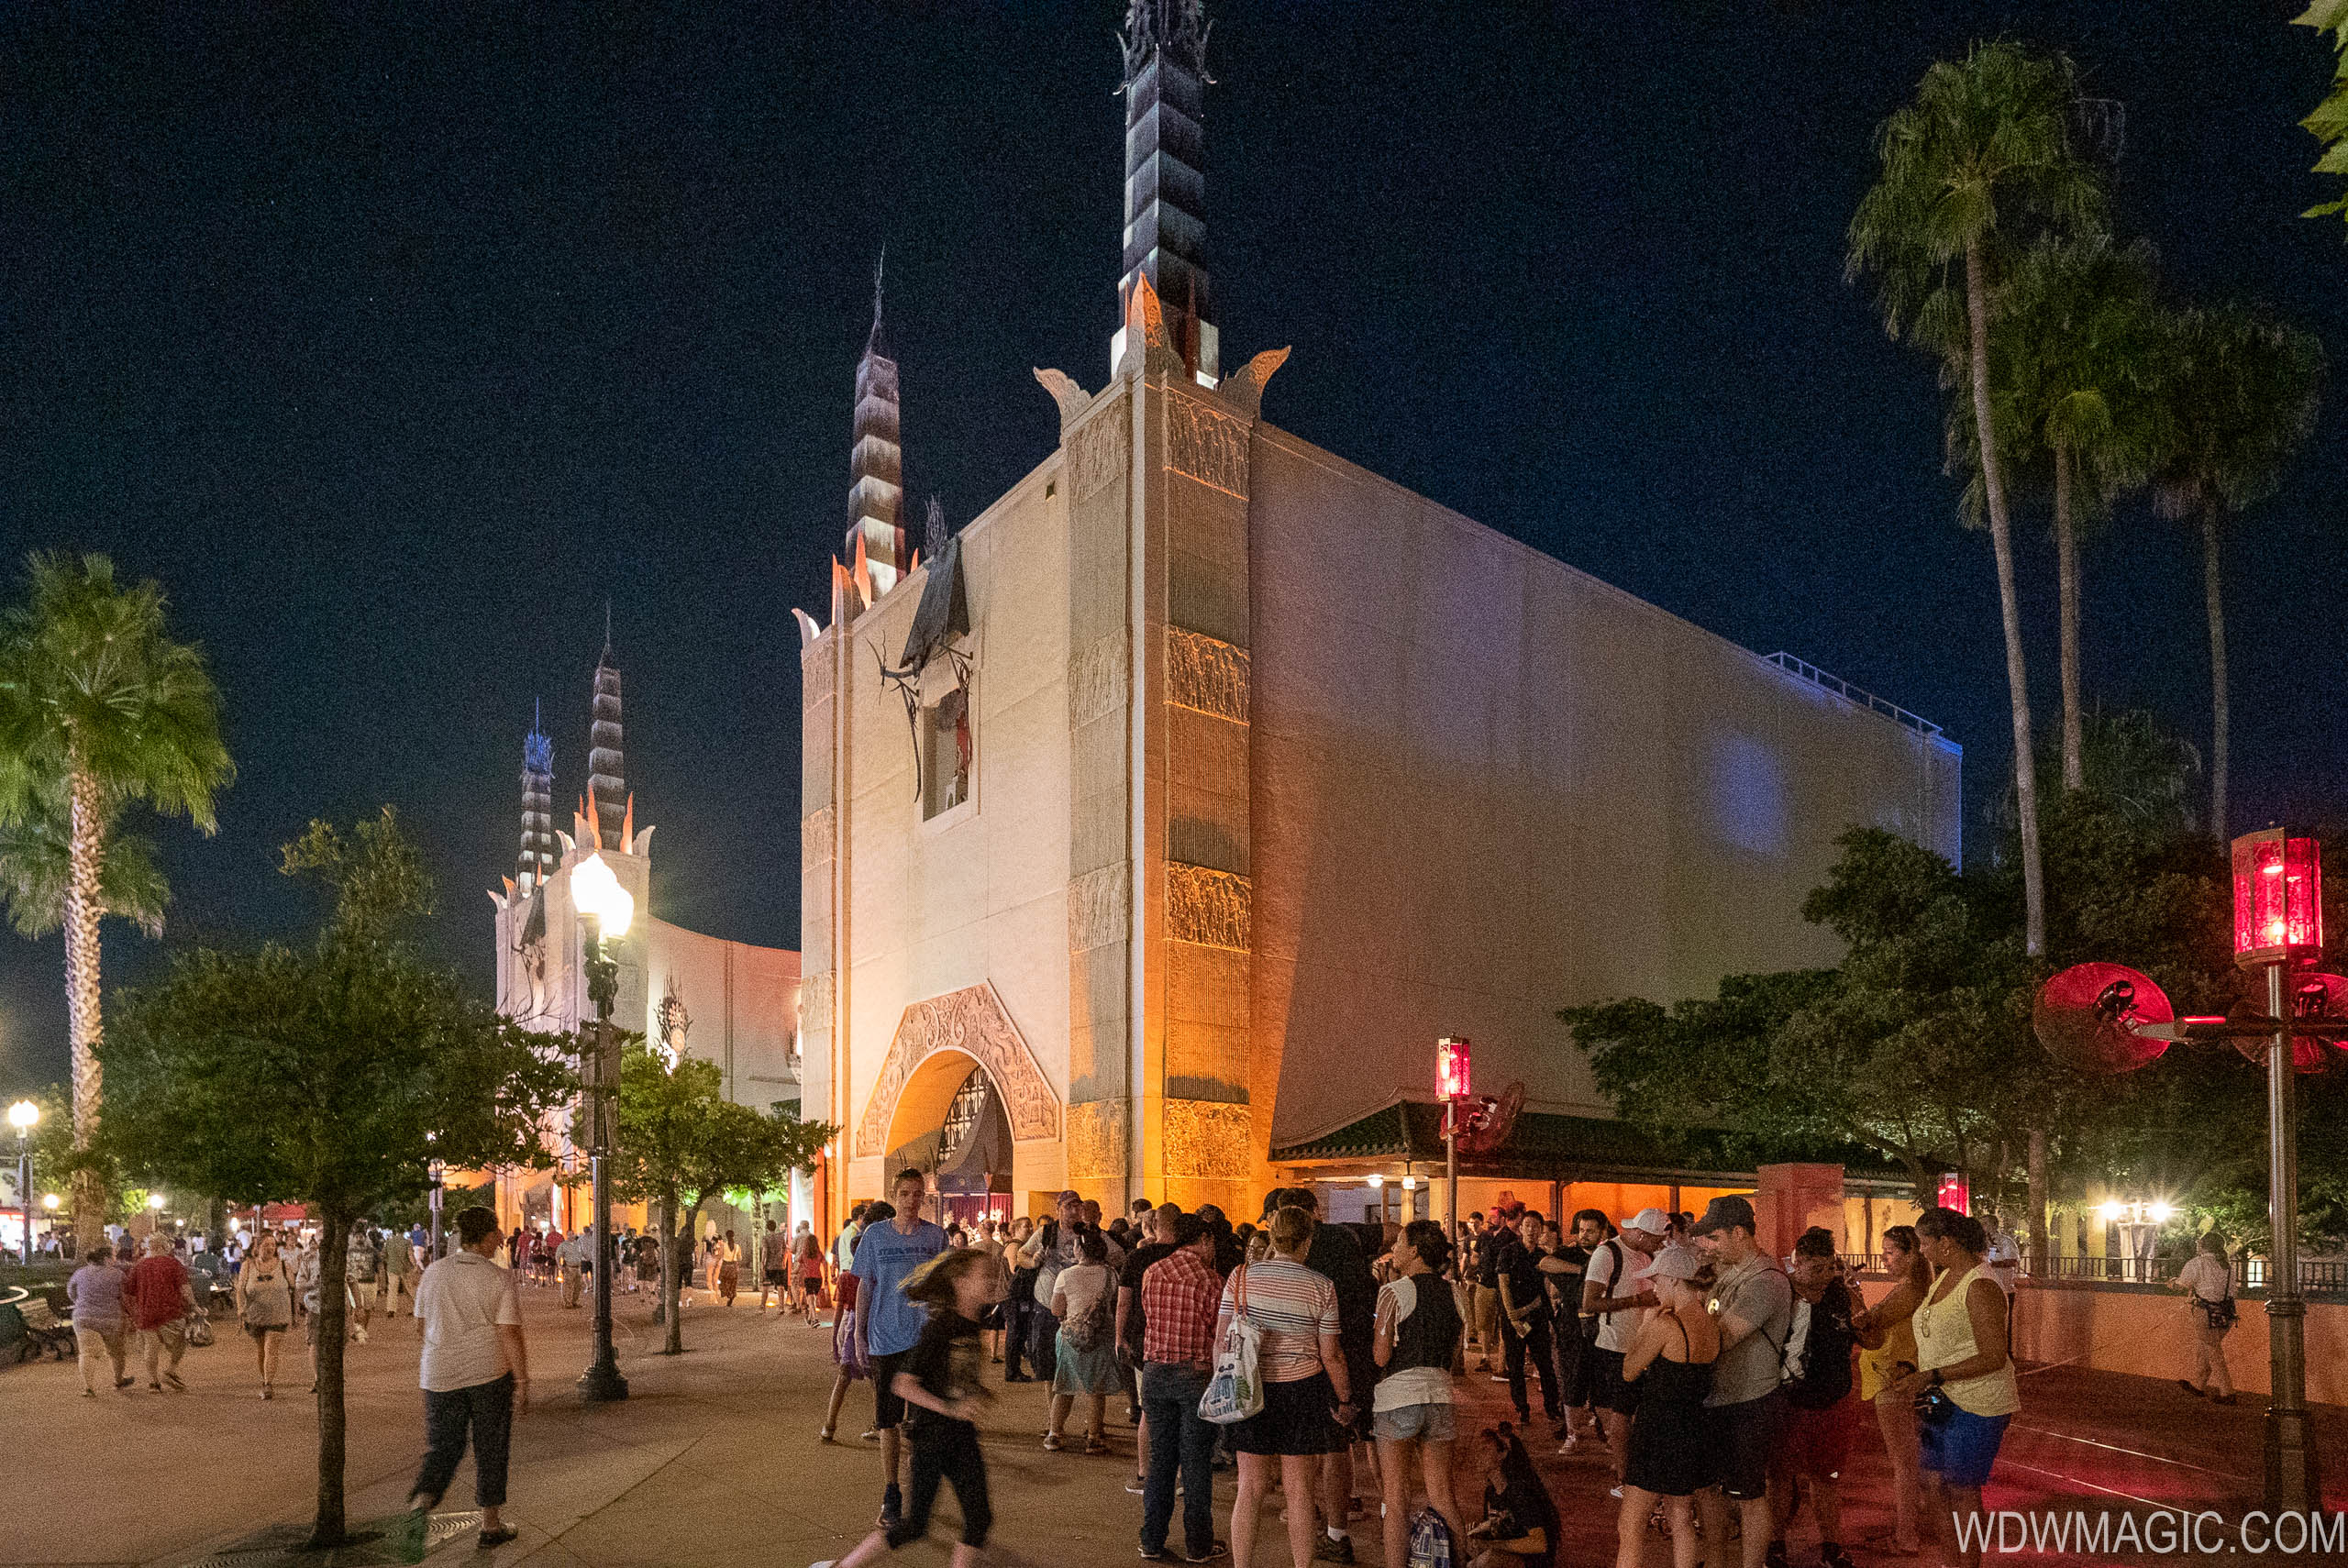 Star Wars Galaxy's Edge opening day crowds at Disney's Hollywood Studios